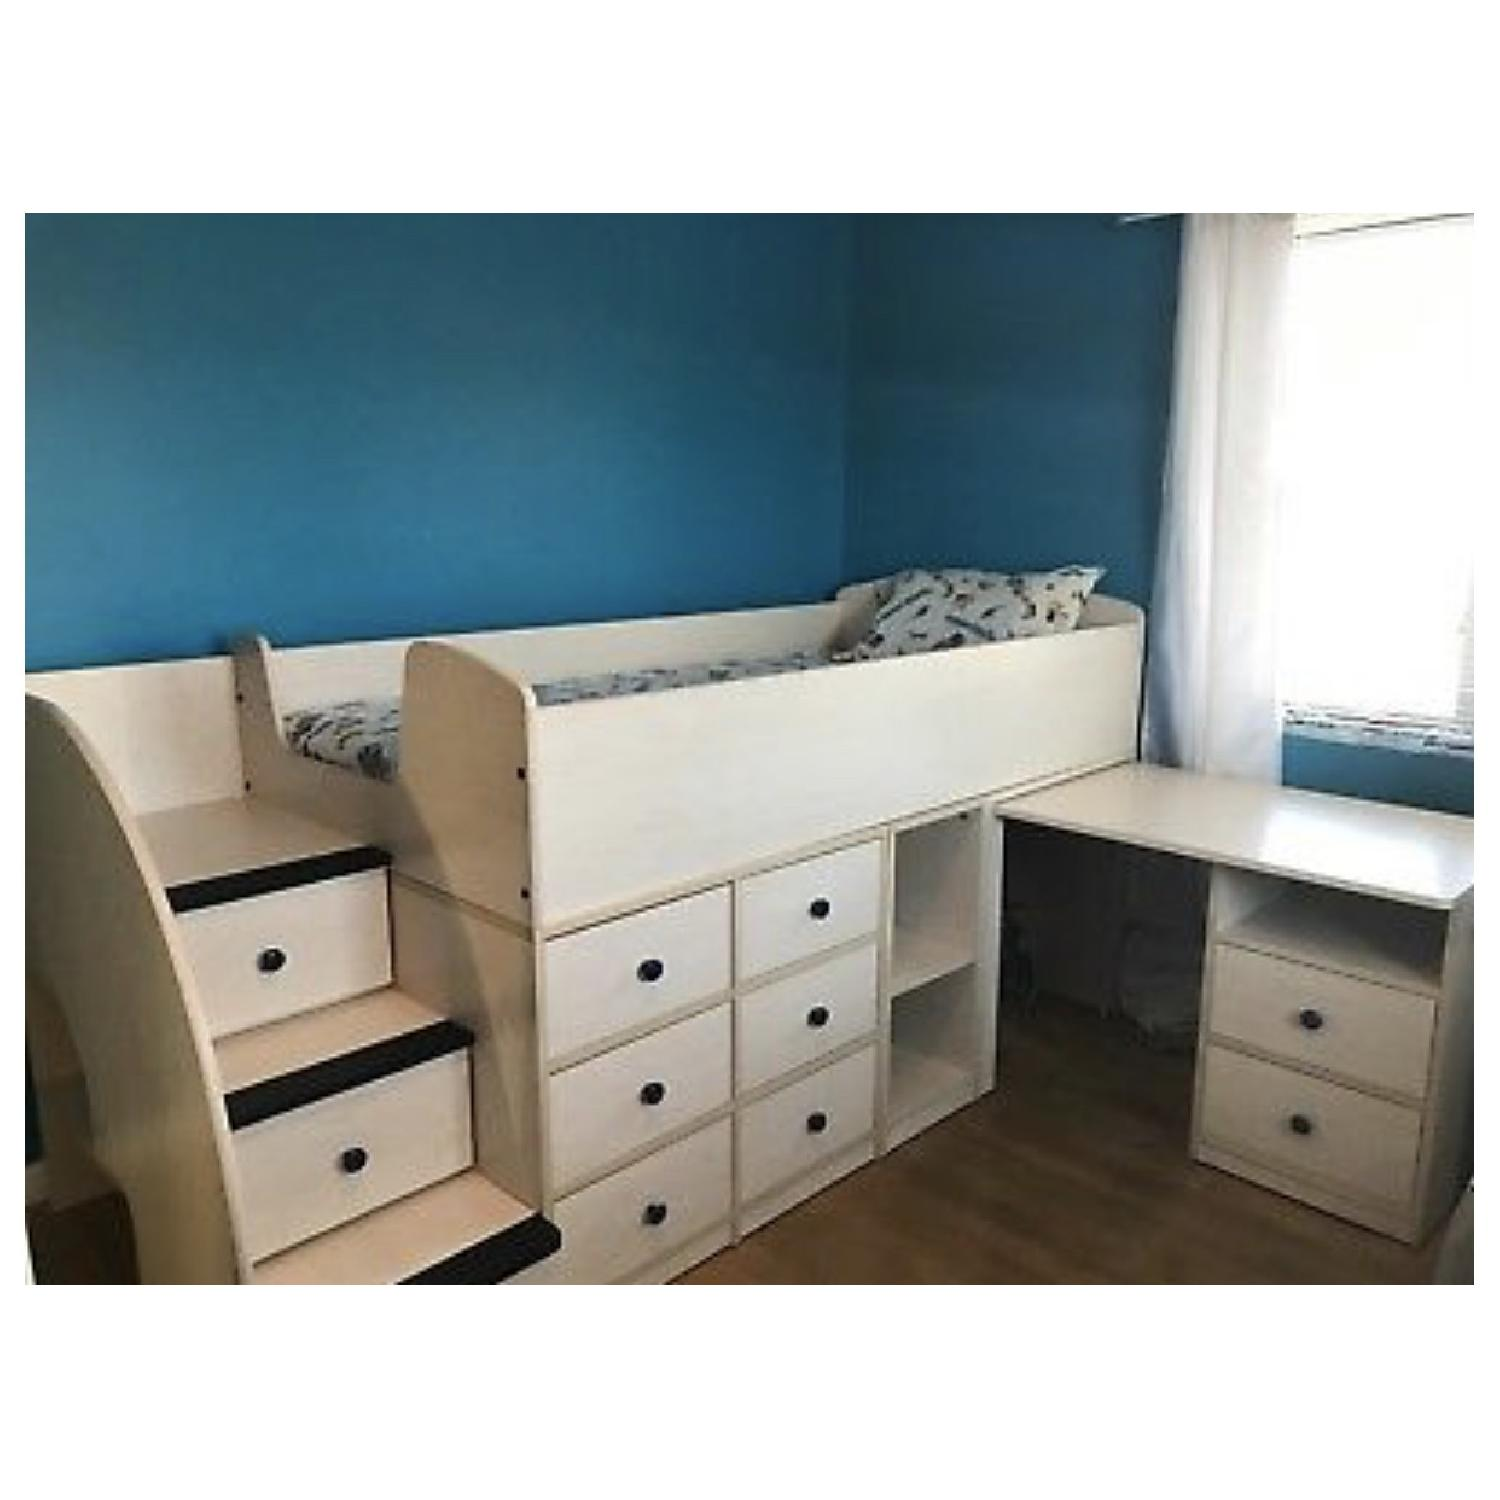 Natural Wood Twin Size Loft Bed w/ Desk & Storage Drawers - image-1